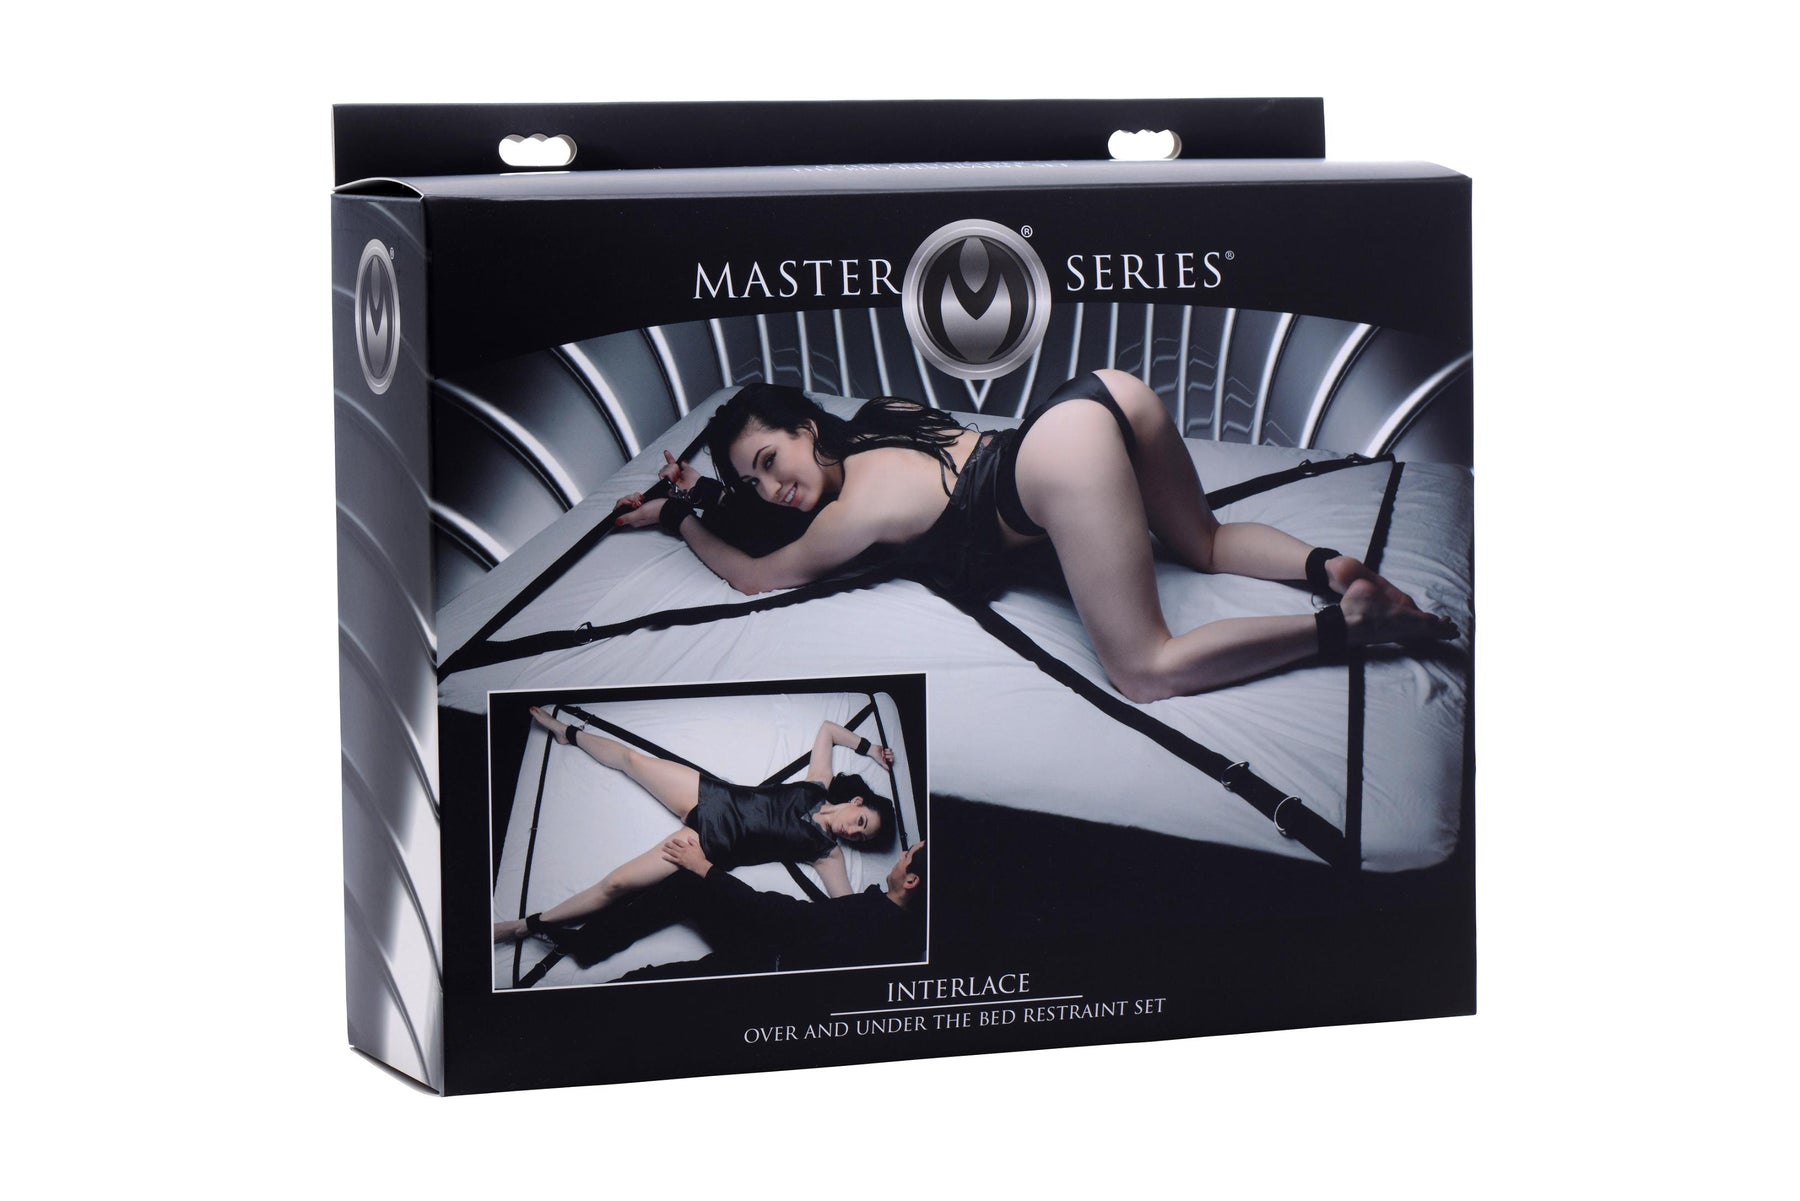 Interlace Over and Under the Bed Restraint Set